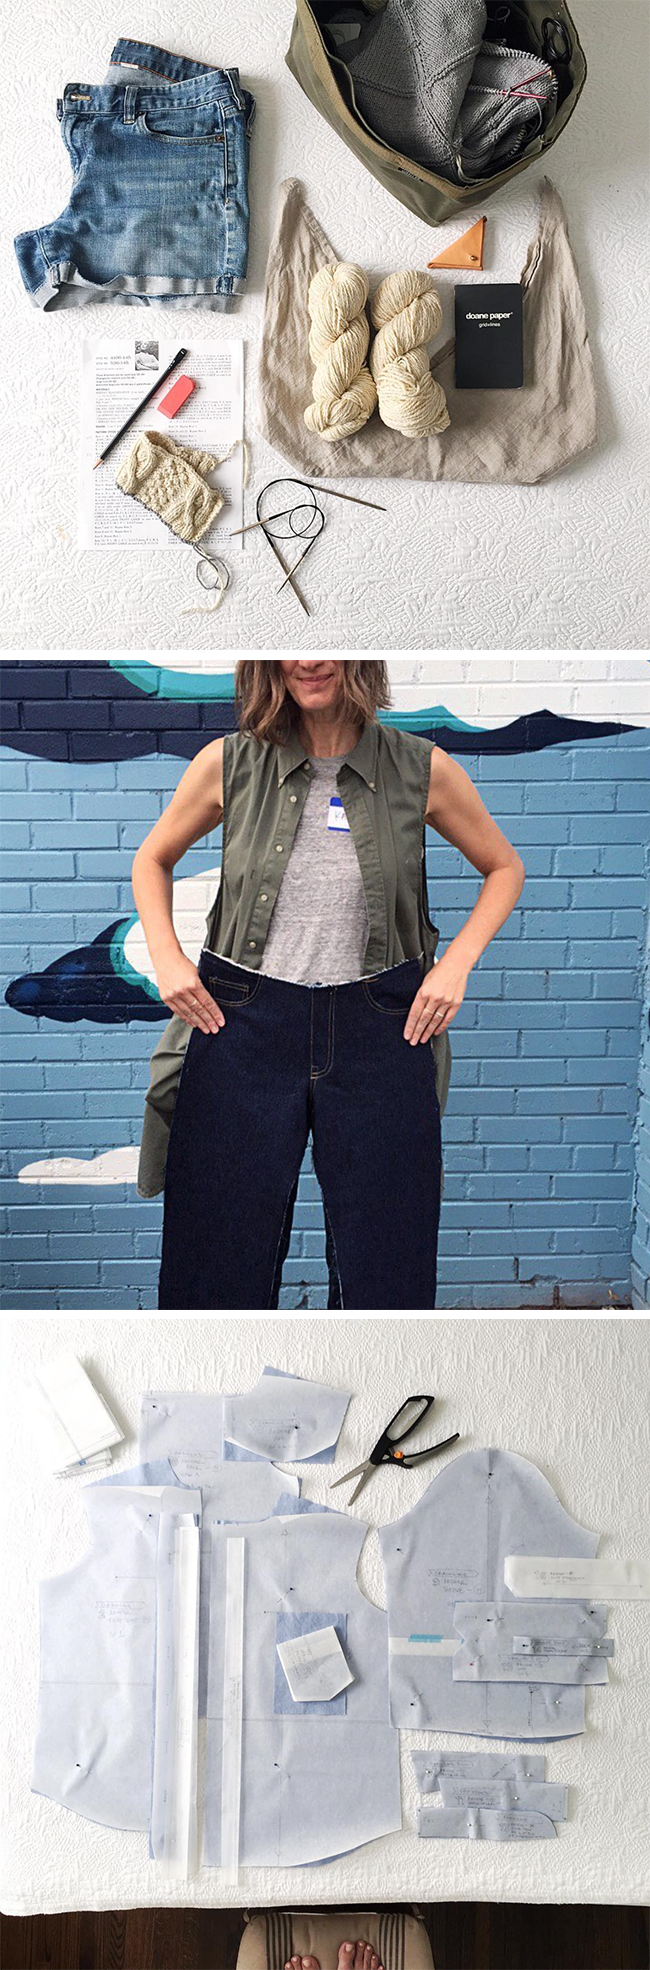 Slow Fashion Citizen: Karen Templer